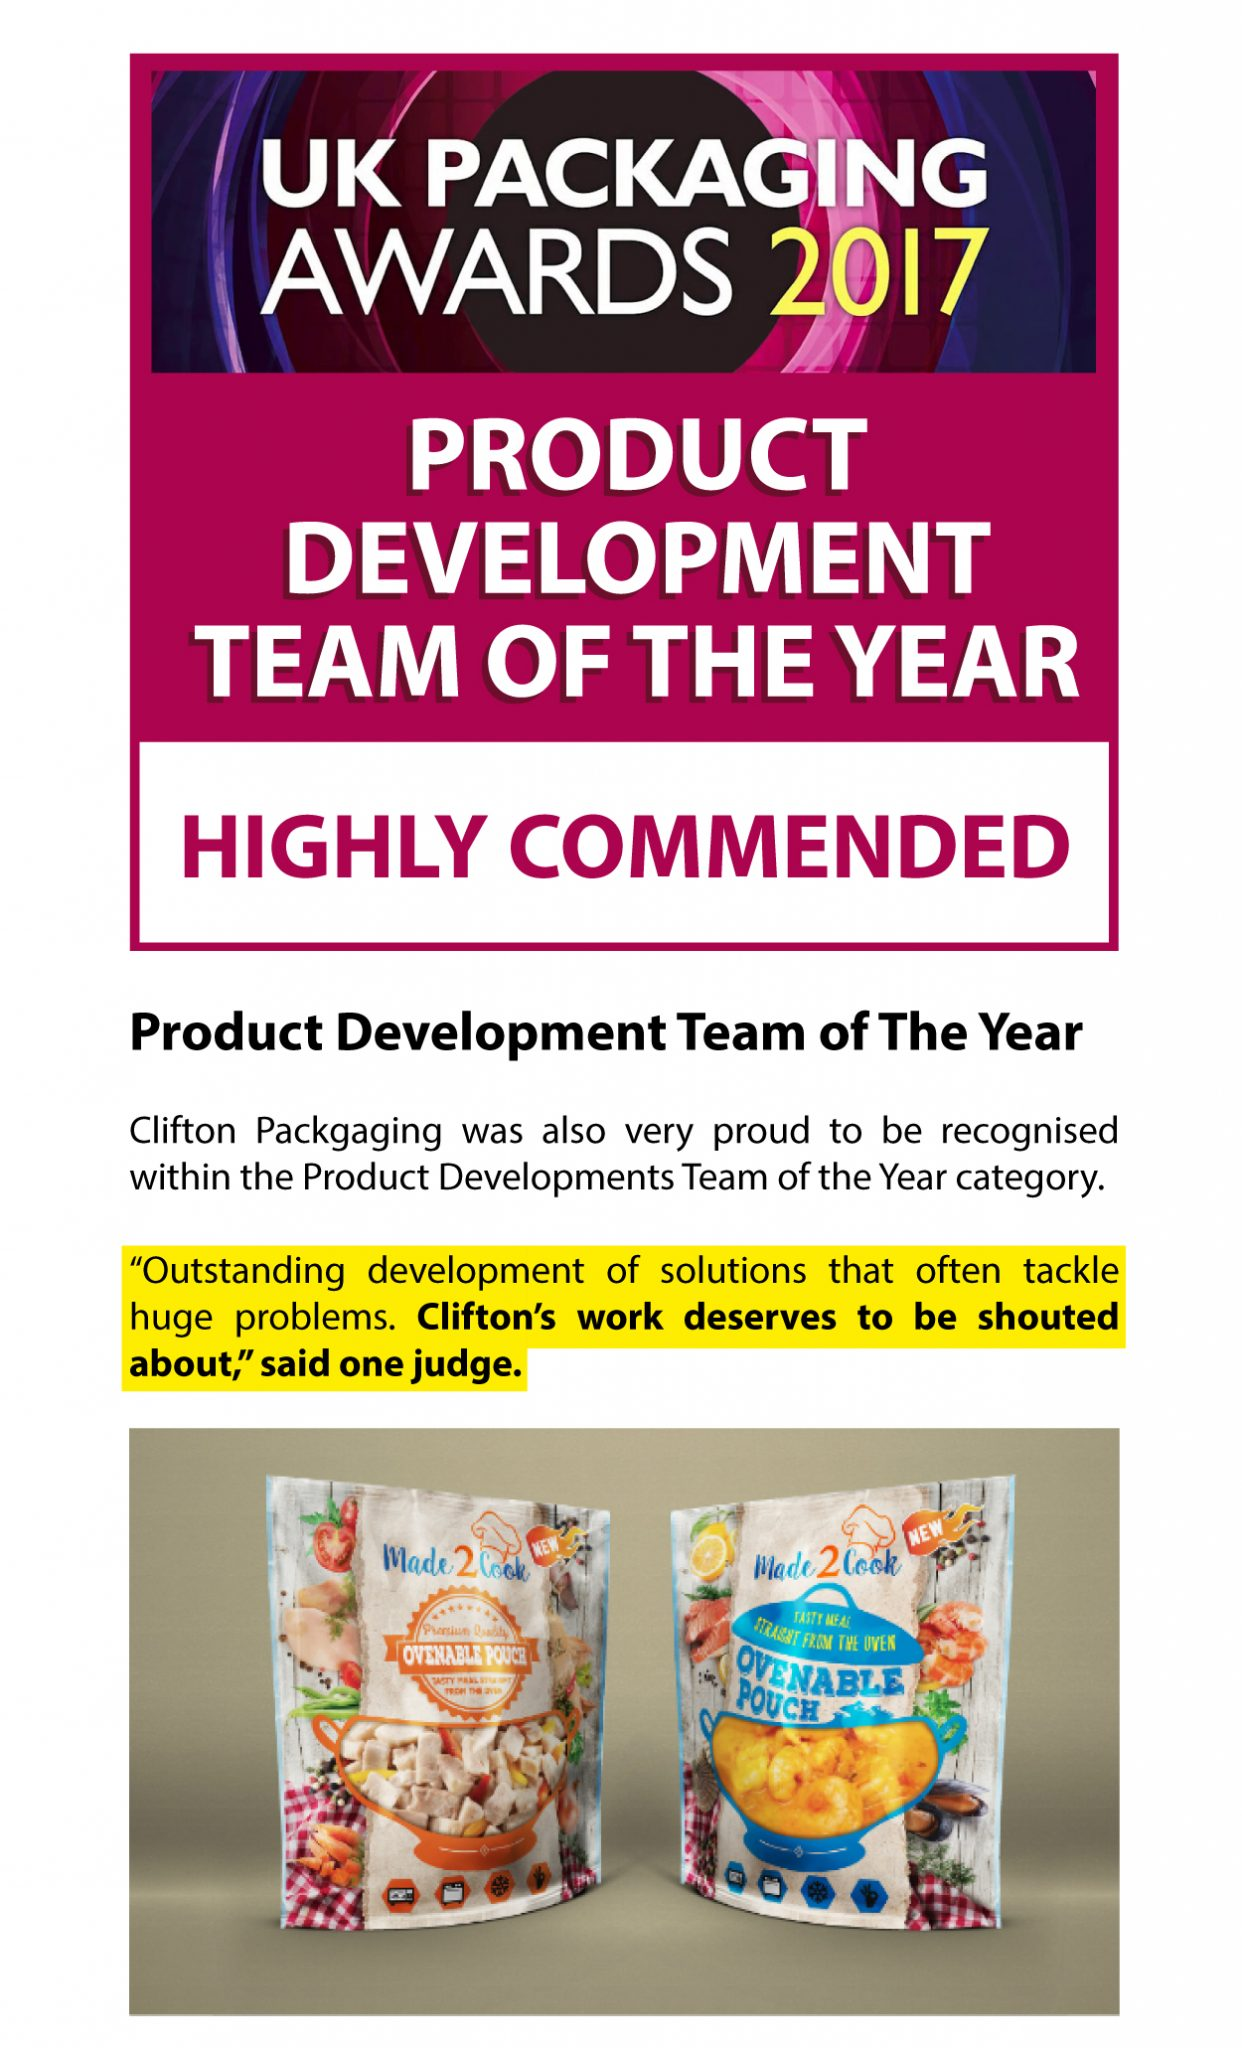 UK Packaging Awards 2017, Highly Commended Product Development Team of the Year, Clifton Packaging Group Ltd.